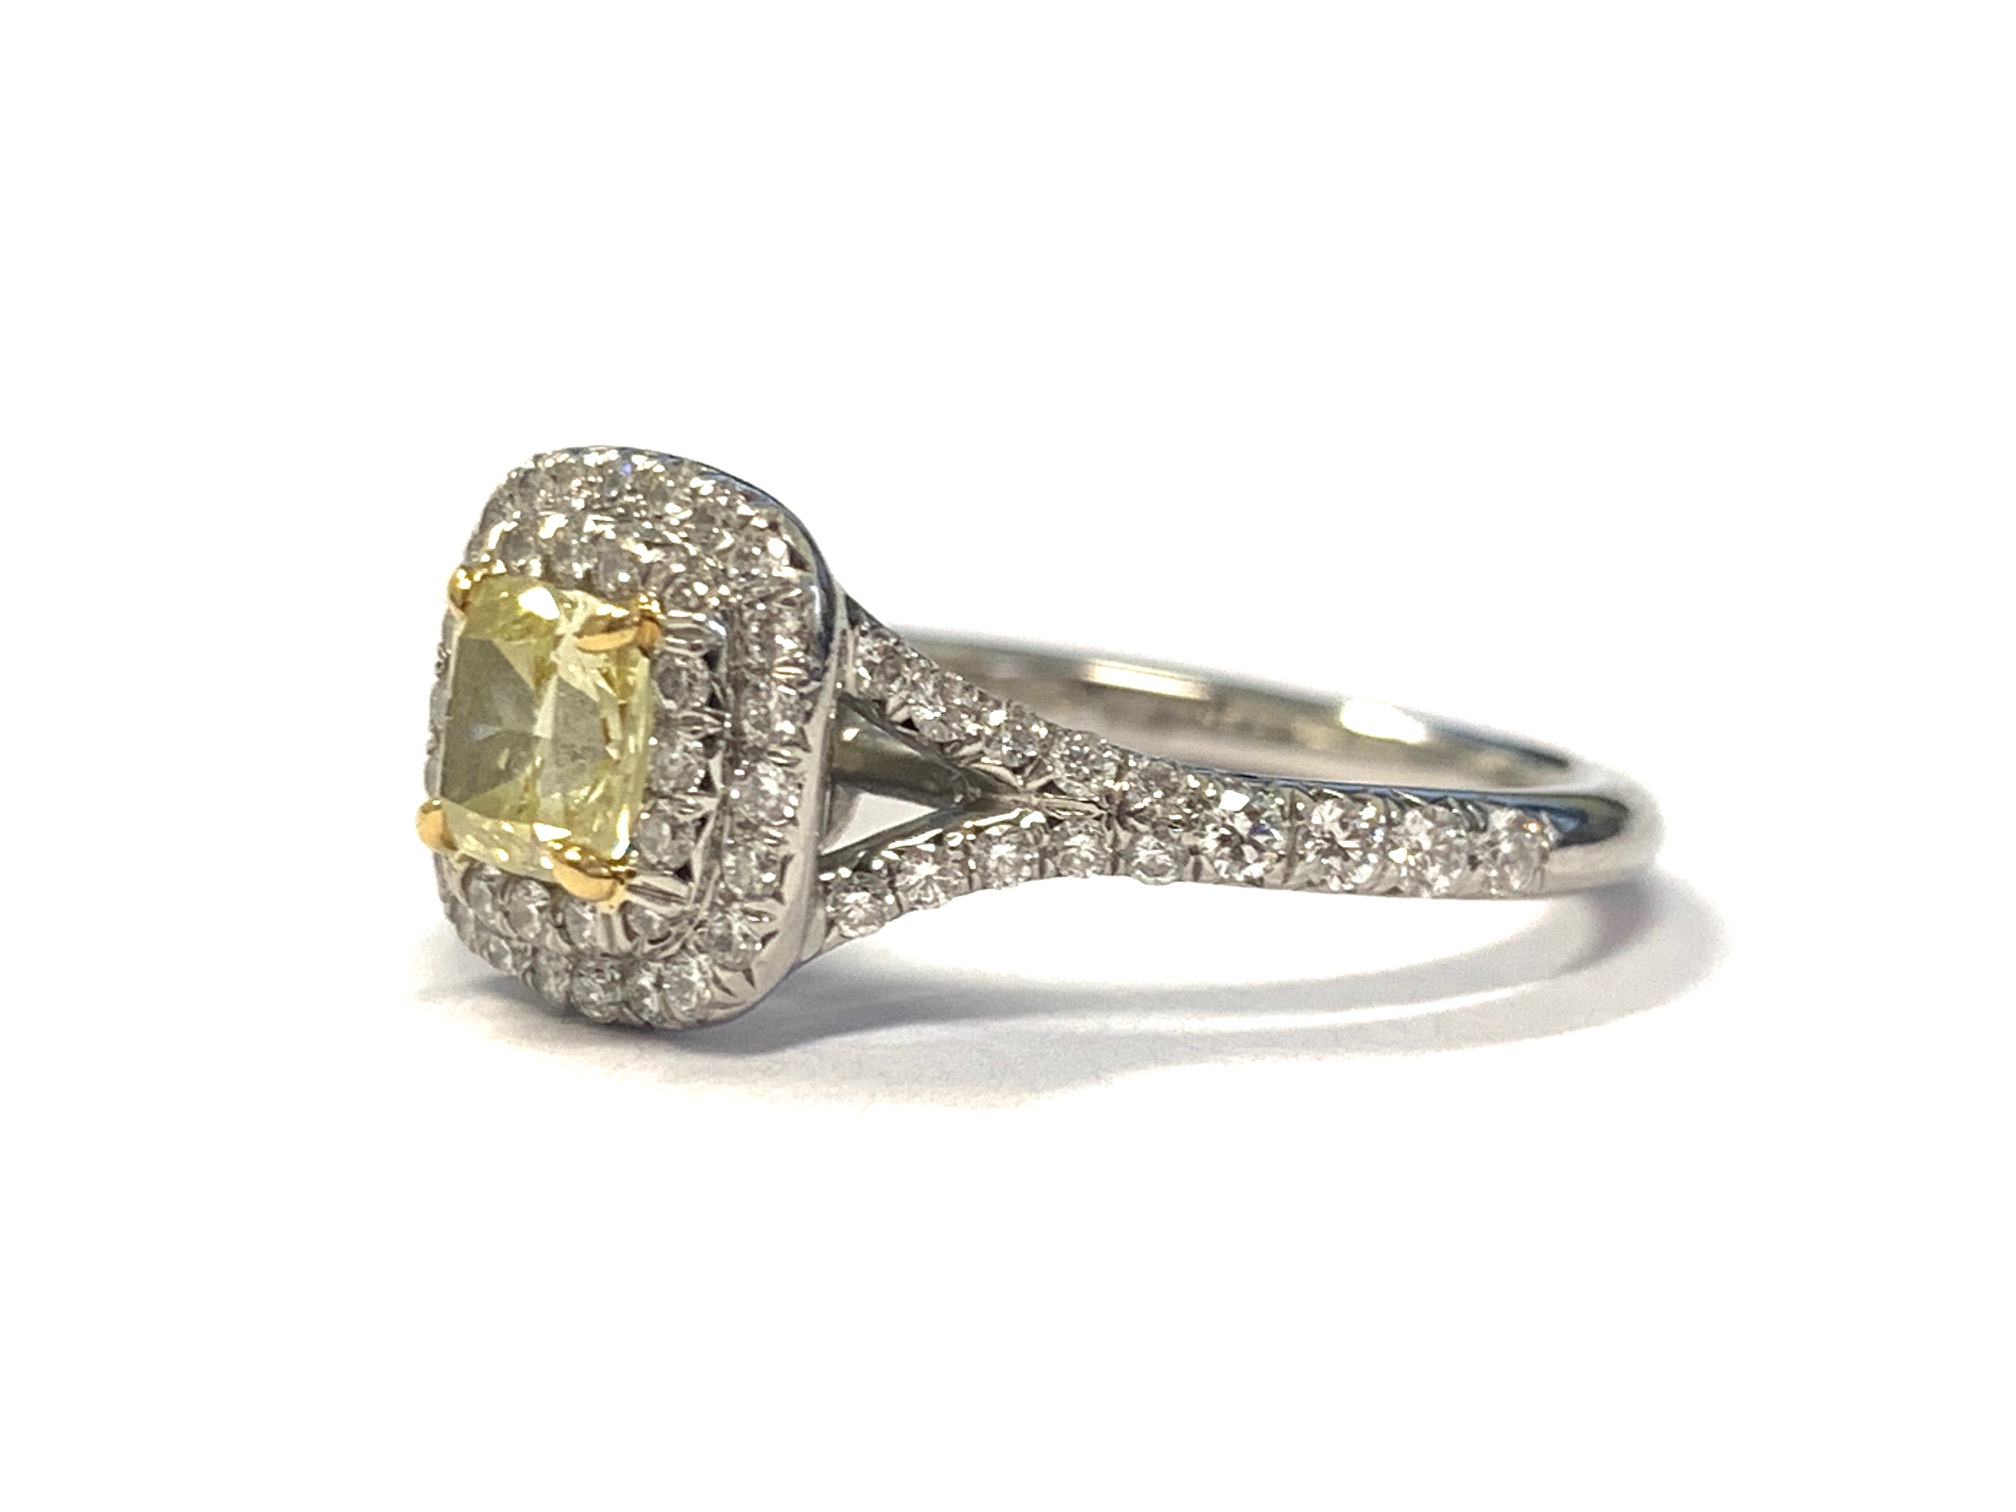 Tiffany Co Soleste Fancy Intense Yellow Cushion Cut Diamond Ring